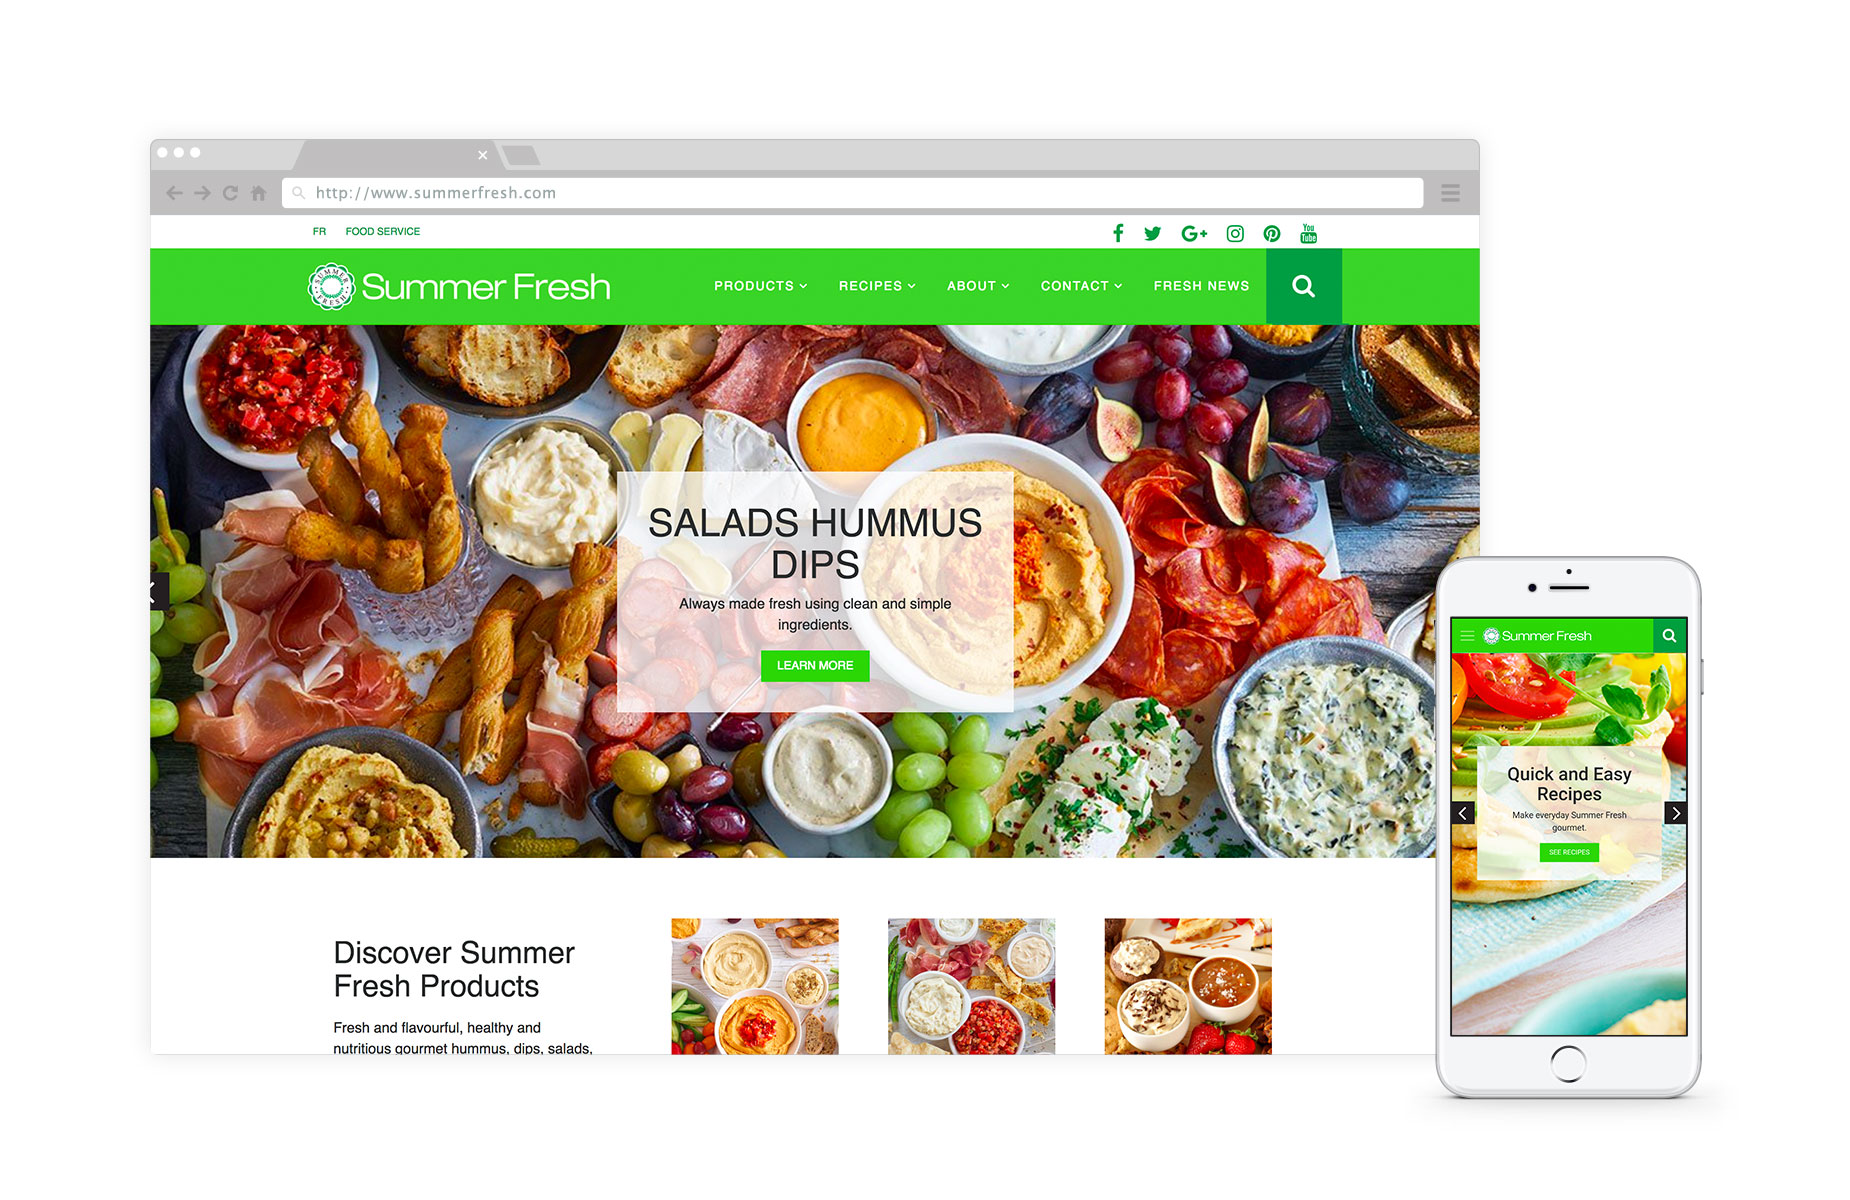 Summer Fresh - Summer Fresh is a Canadian, family-owned manufacturer of gourmet hummus, dips and salads, serving the retail and food-service market for 25 years. #CPGLearn how we showcased Summer Fresh's products and recipes